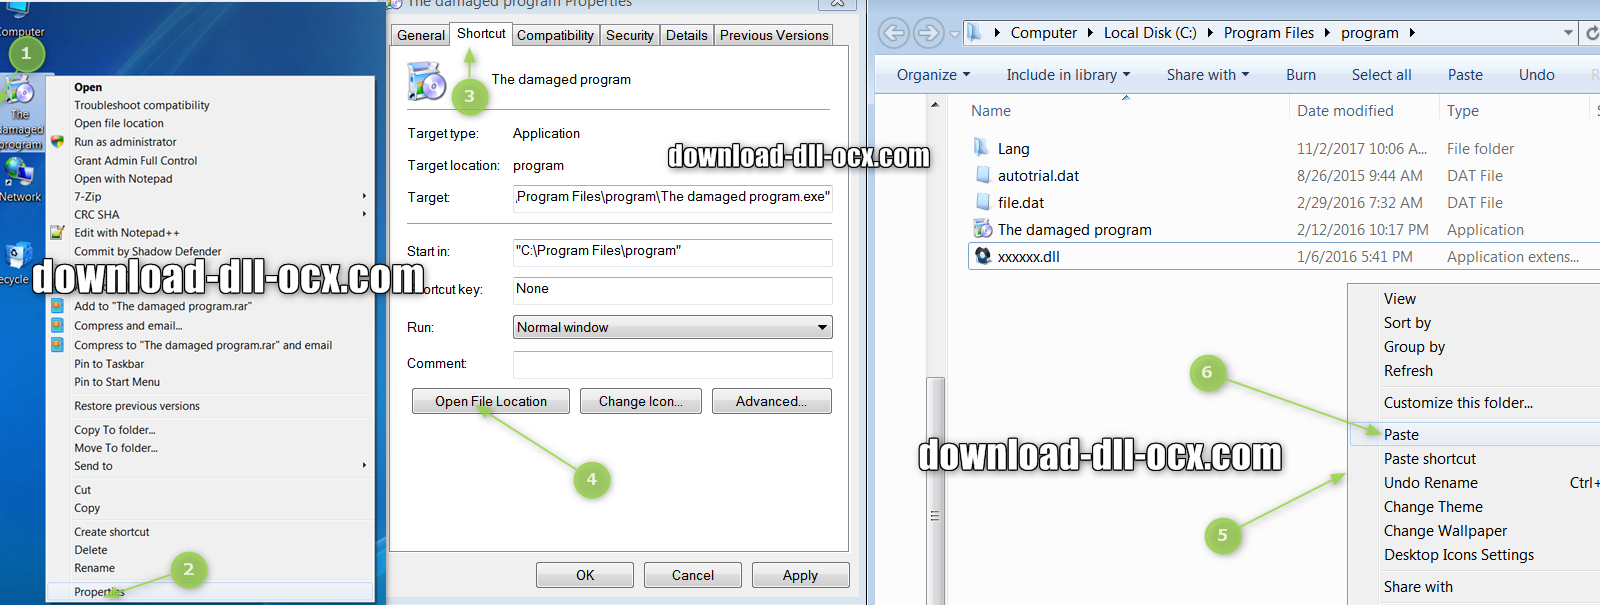 how to install comaddin.dll file? for fix missing